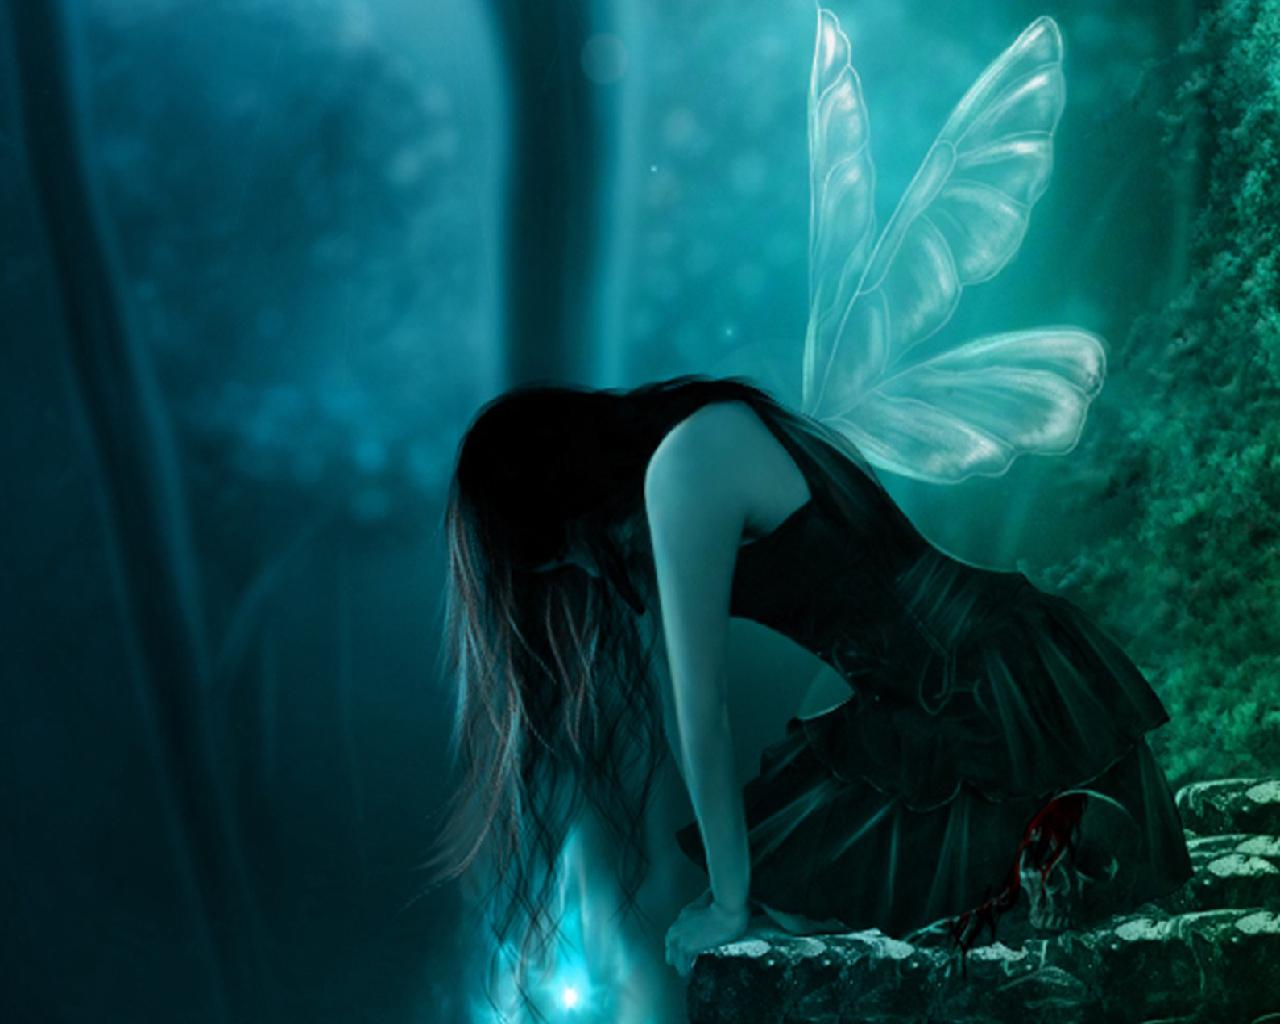 Dark fairy   130185   High Quality and Resolution Wallpapers on 1280x1024